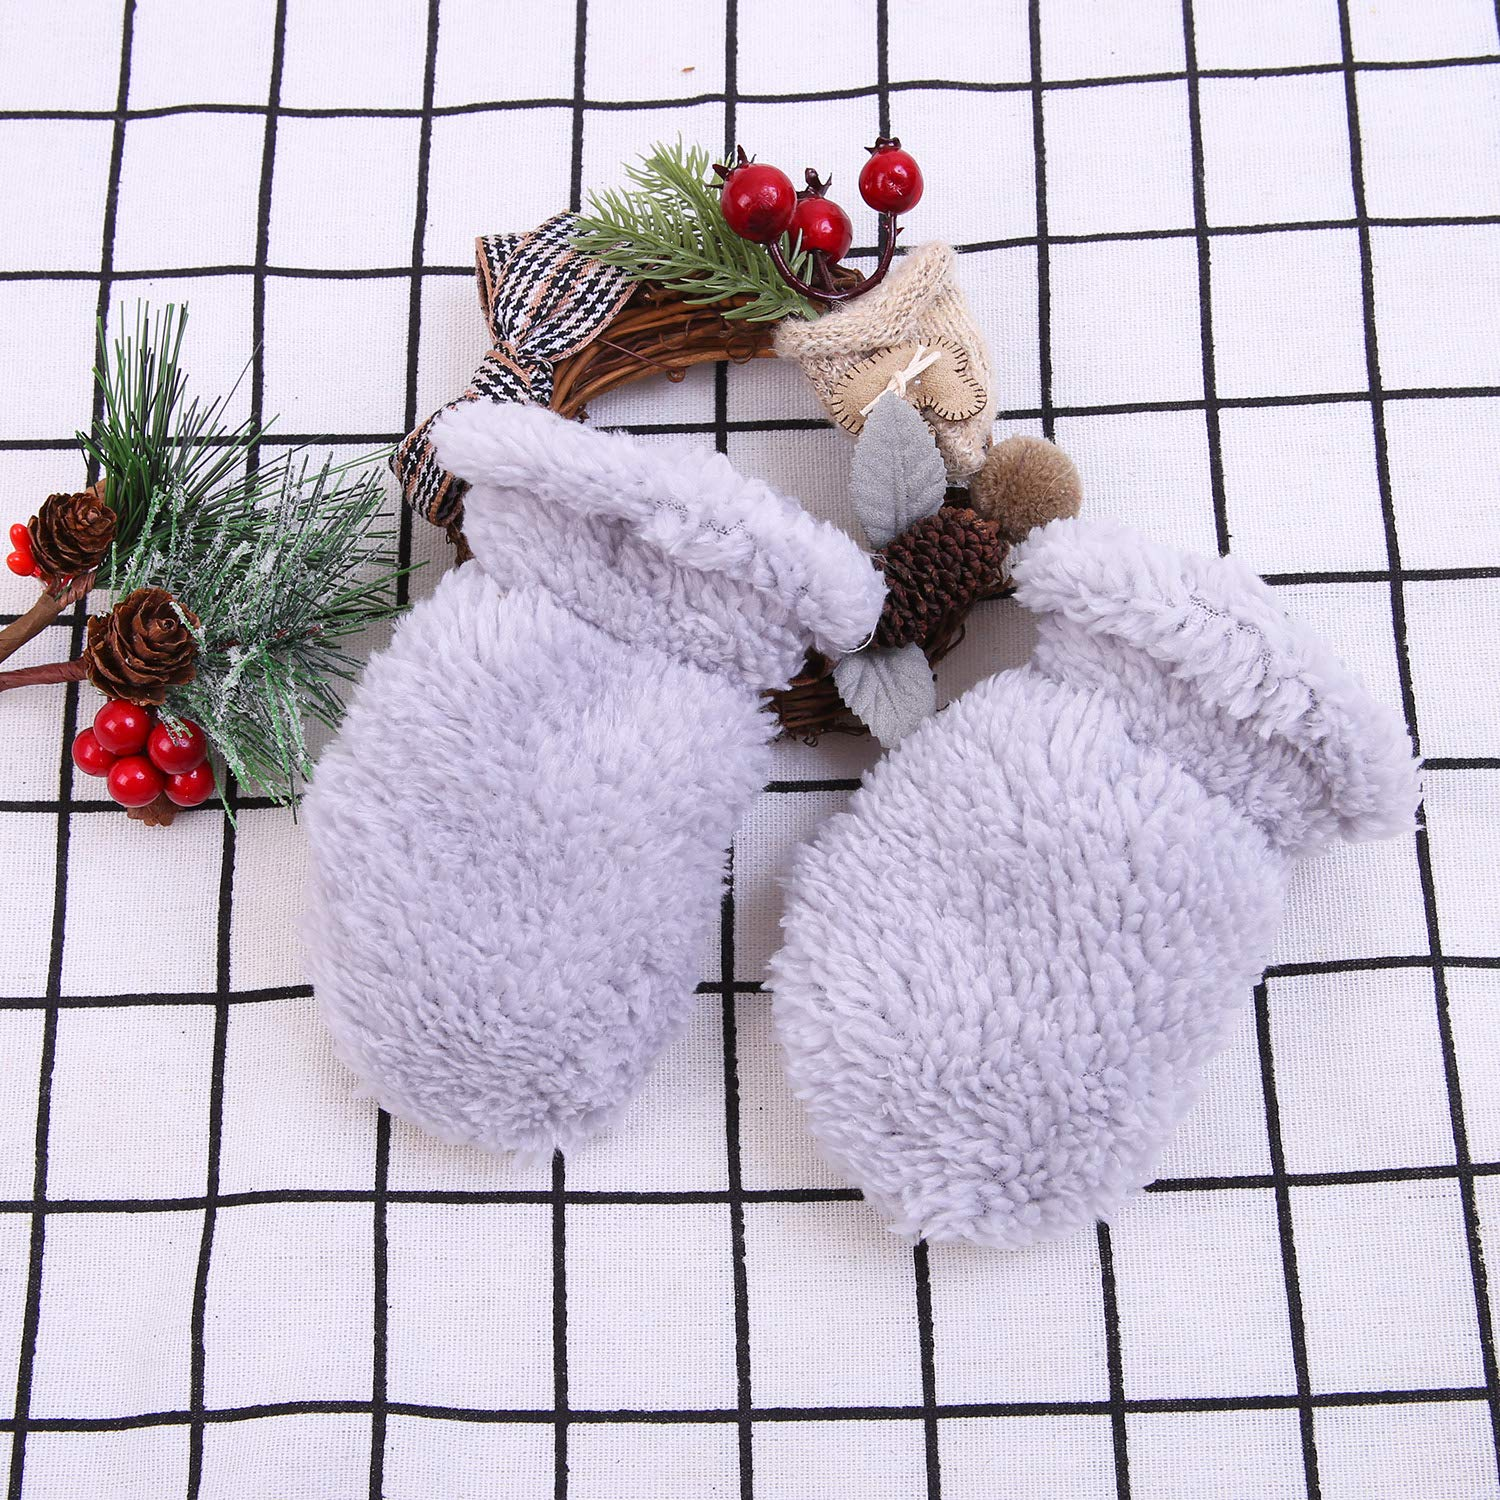 Aneco 2 Pairs Toddler Baby Mittens Warm Sherpa Lined Fleece Mittens with 2 Pack Adjustable Mitten Clips